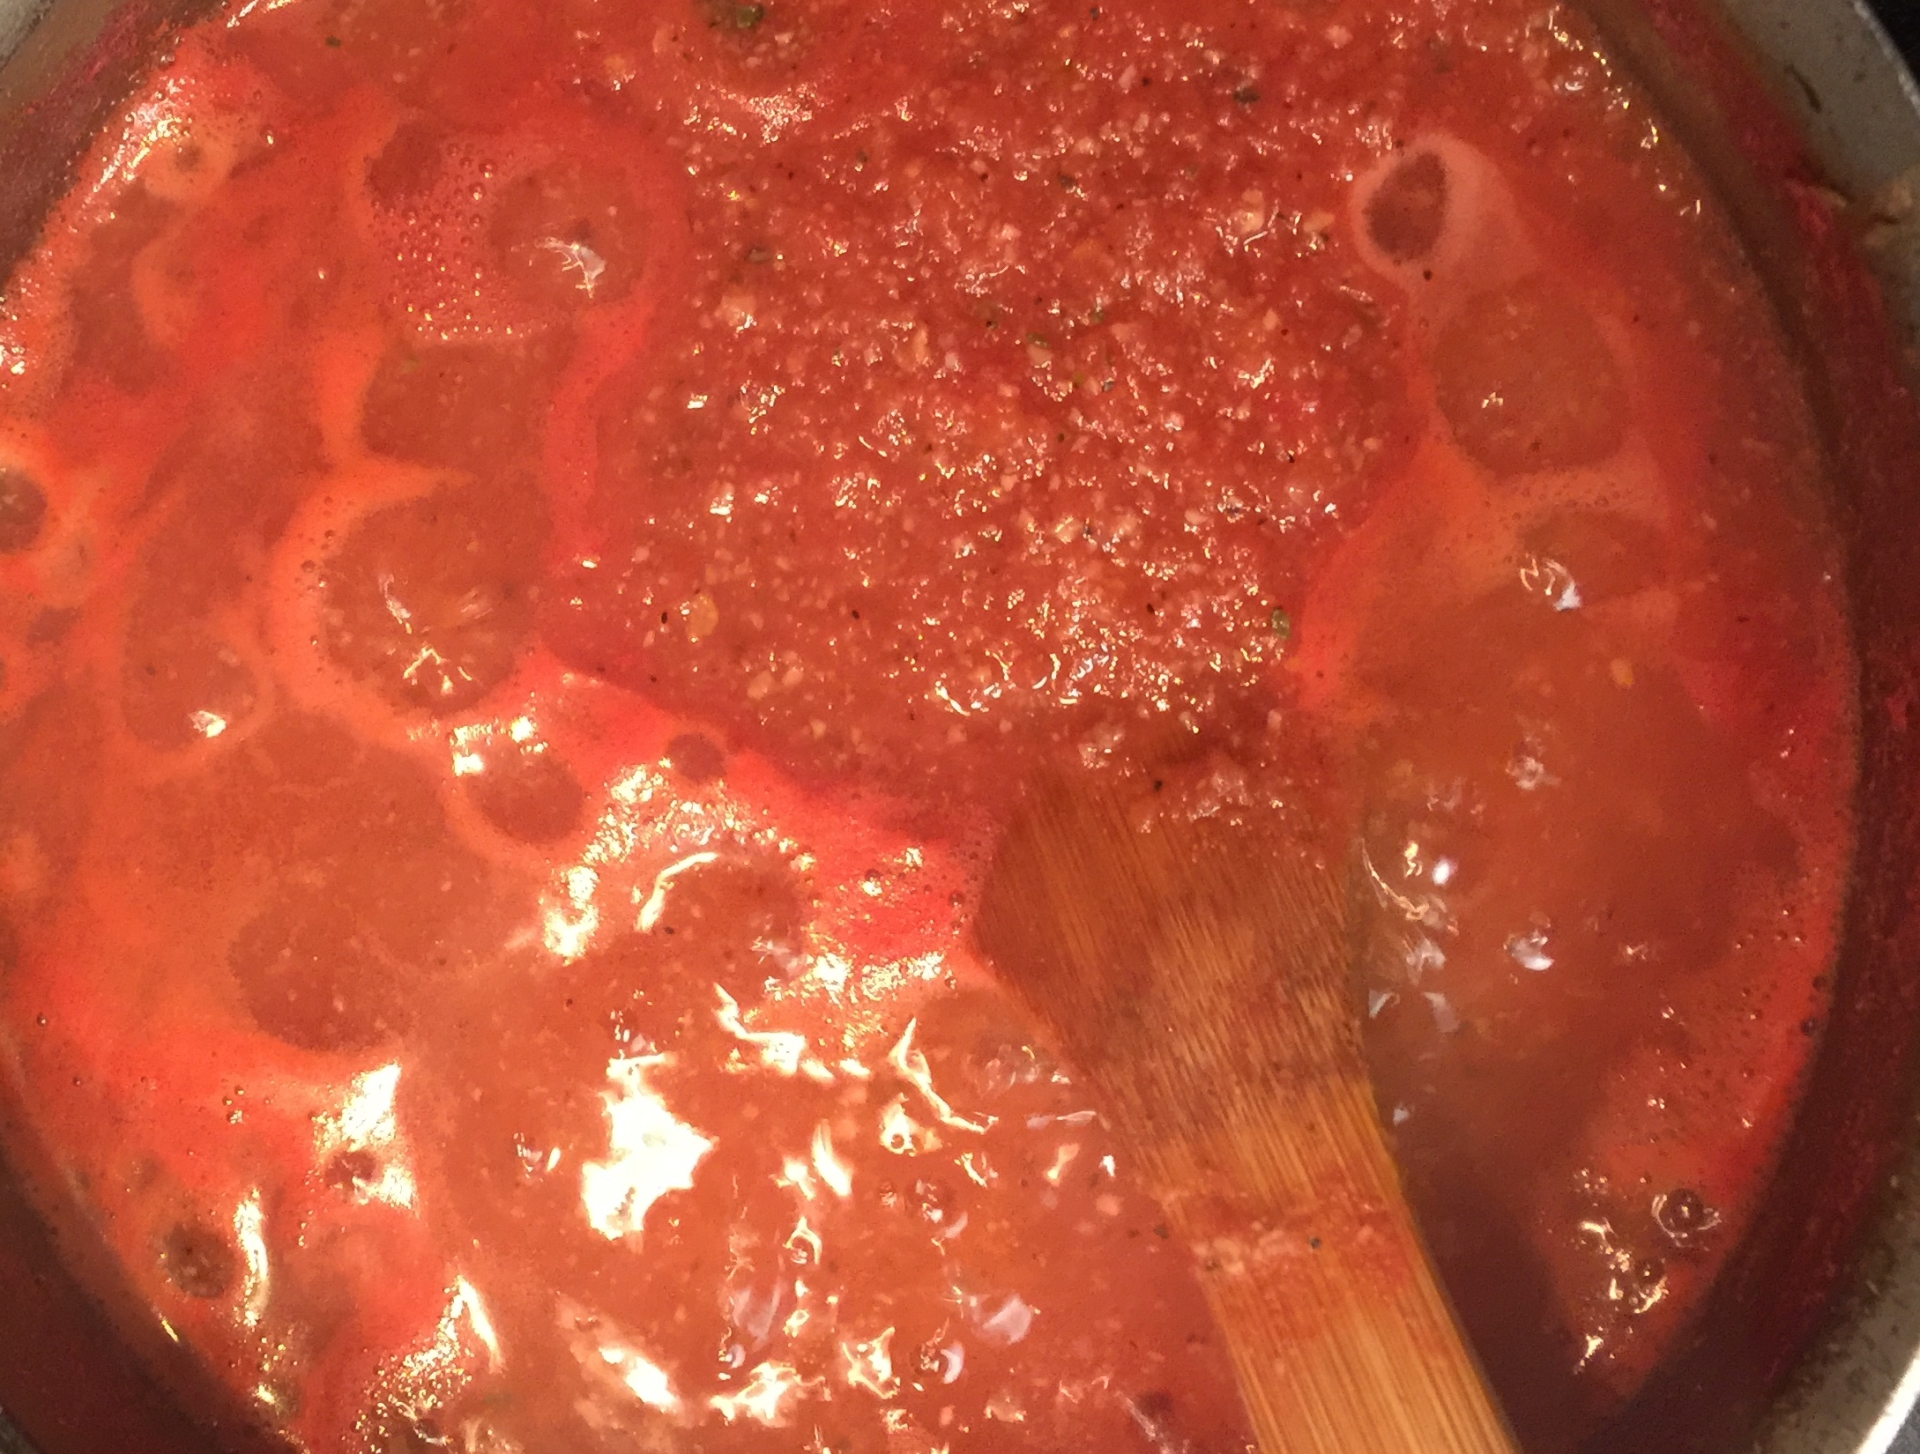 That home made sauce